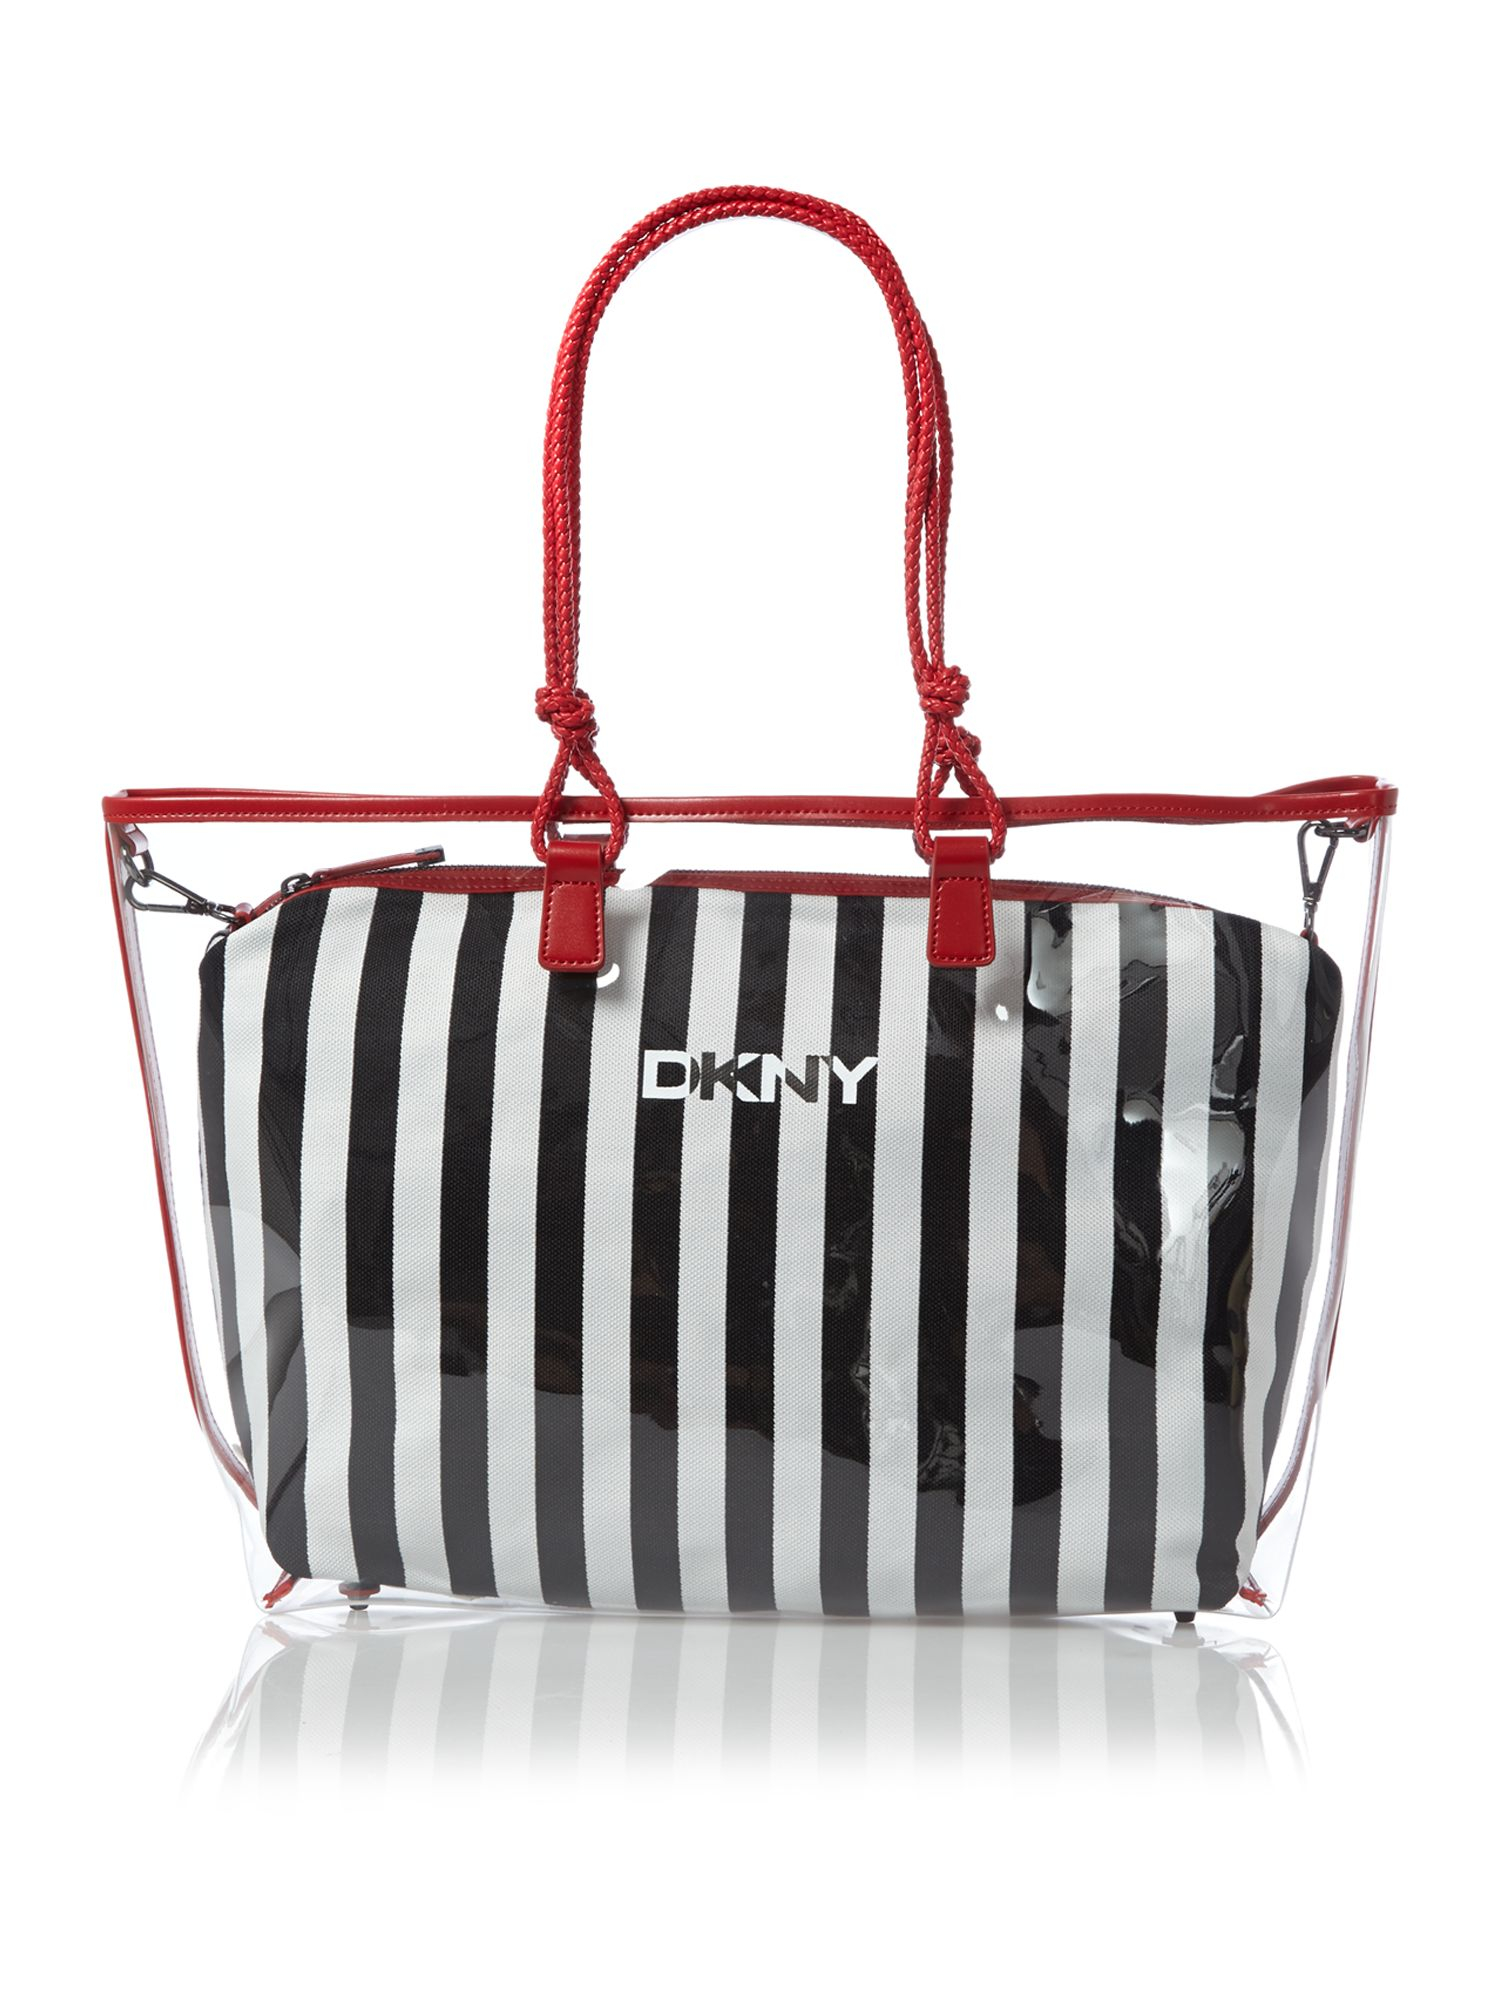 Dkny Beach Clear Stripe Tote Bag | Lyst